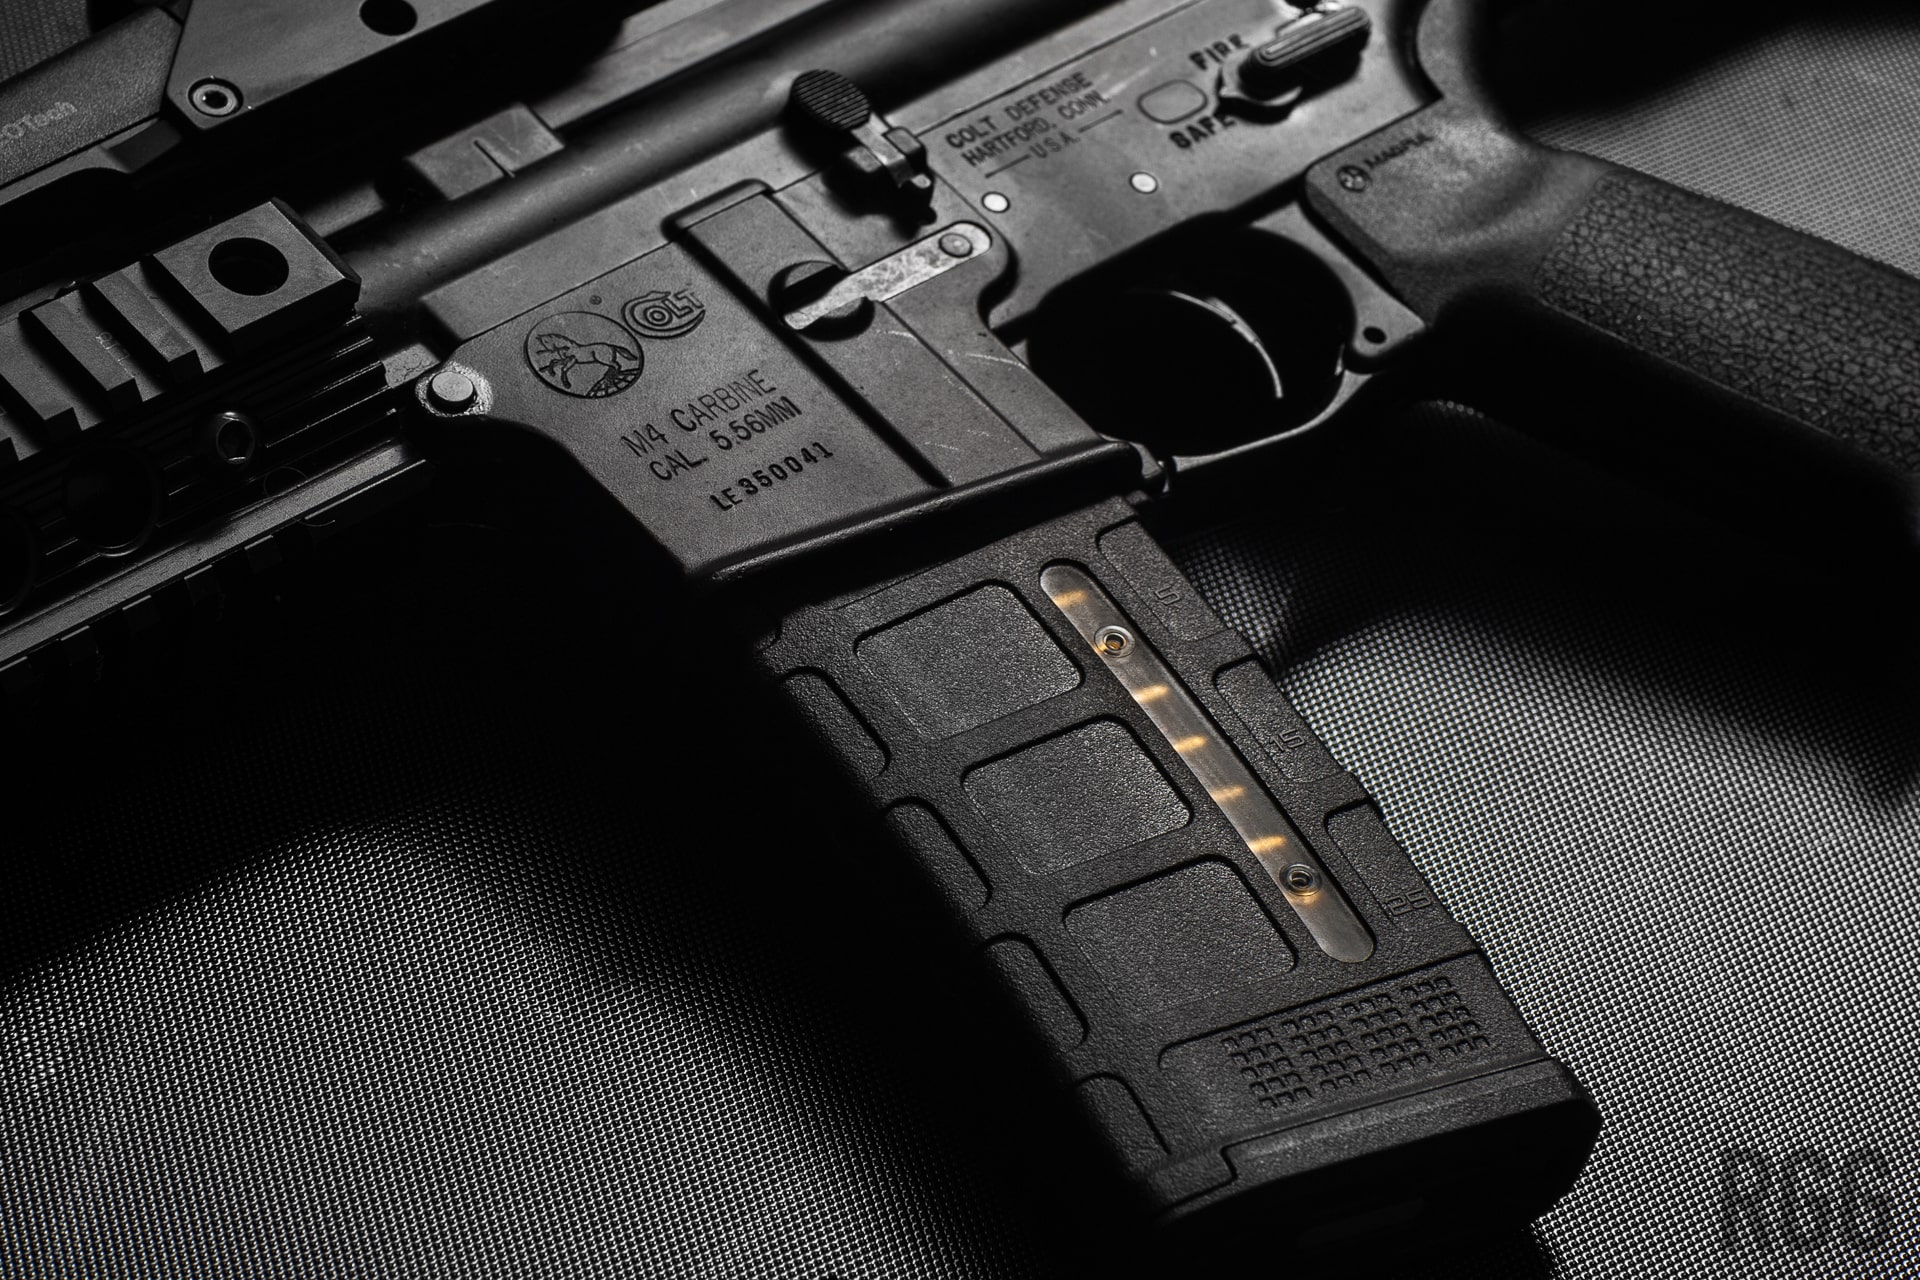 The Colt LE6920 is the benchmark for the AR platform.